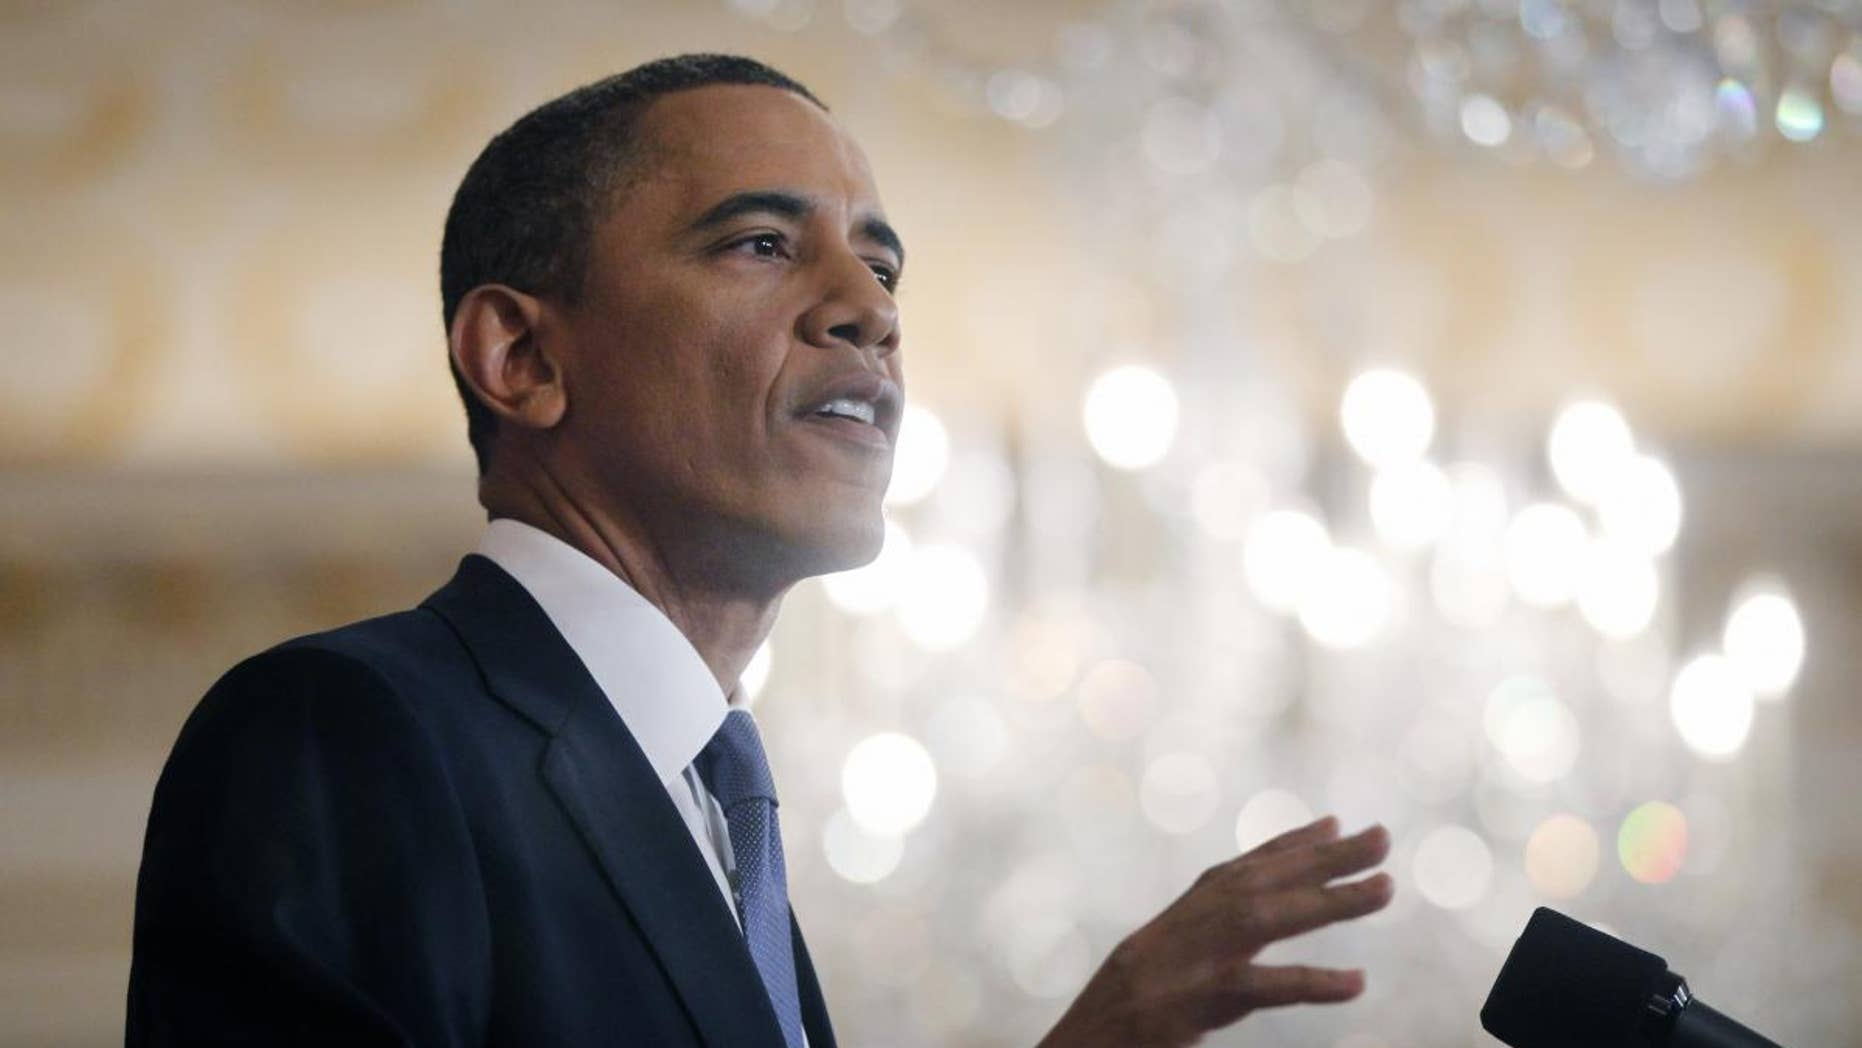 President Barack Obama delivers a policy address on events in the Middle East at the State Department in Washington, Thursday, May 19, 2011. (AP Photo/Charles Dharapak)